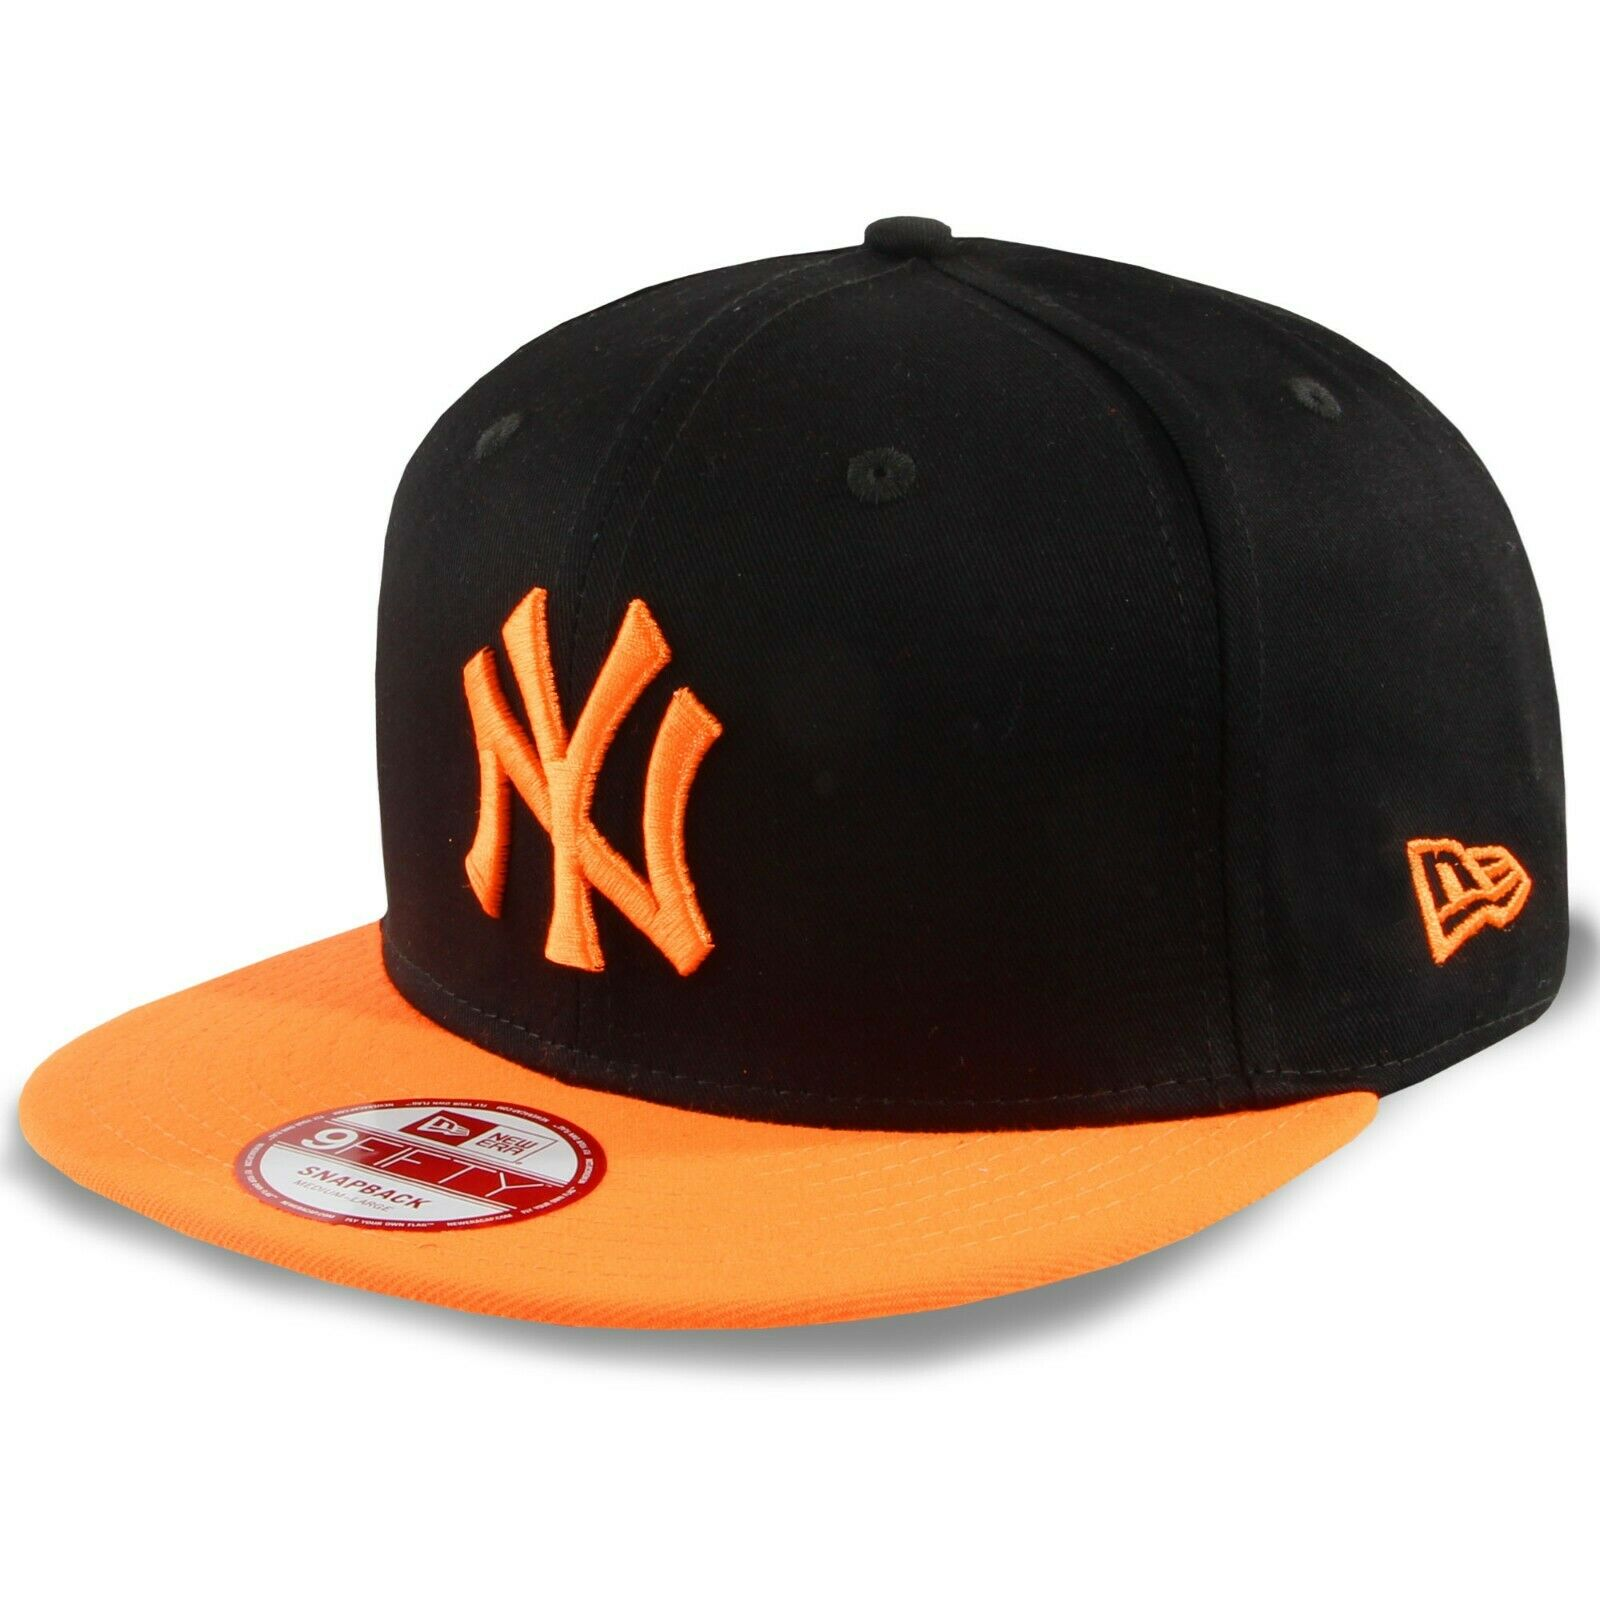 New York Yankees #K8